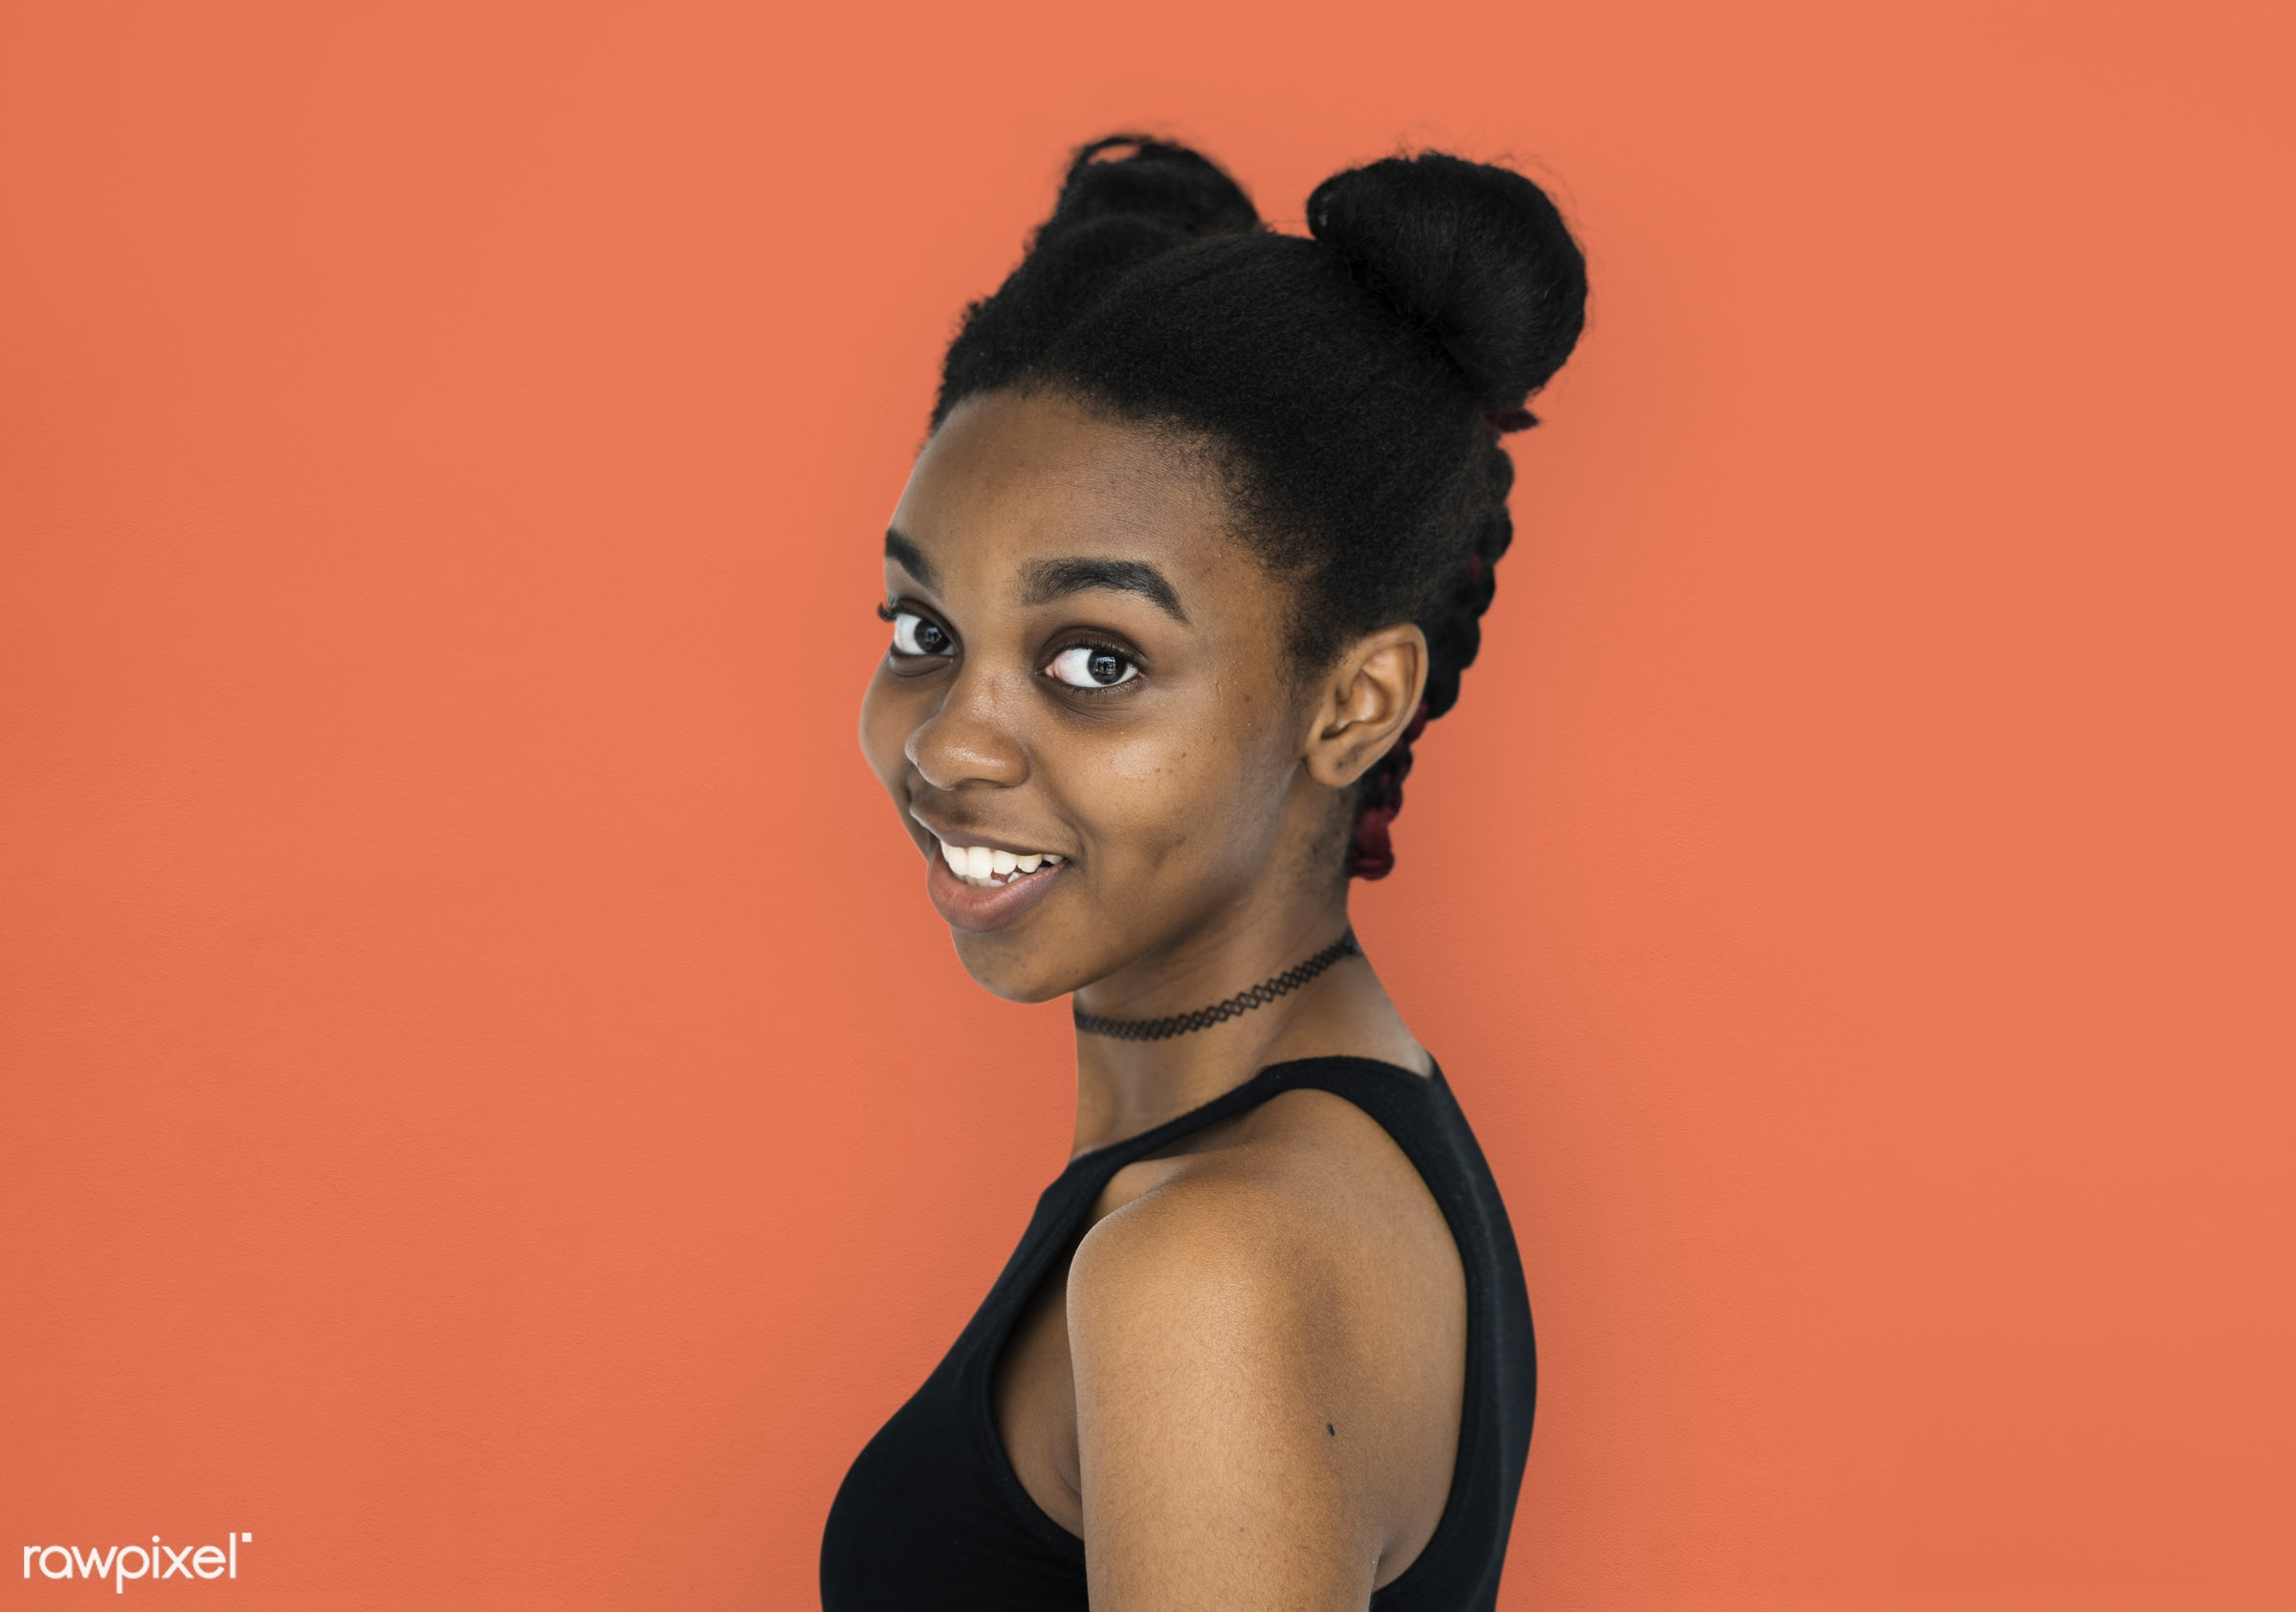 expression, studio, person, people, woman, smile, cheerful, smiling, orange, isolated, buns, african descent, happiness,...